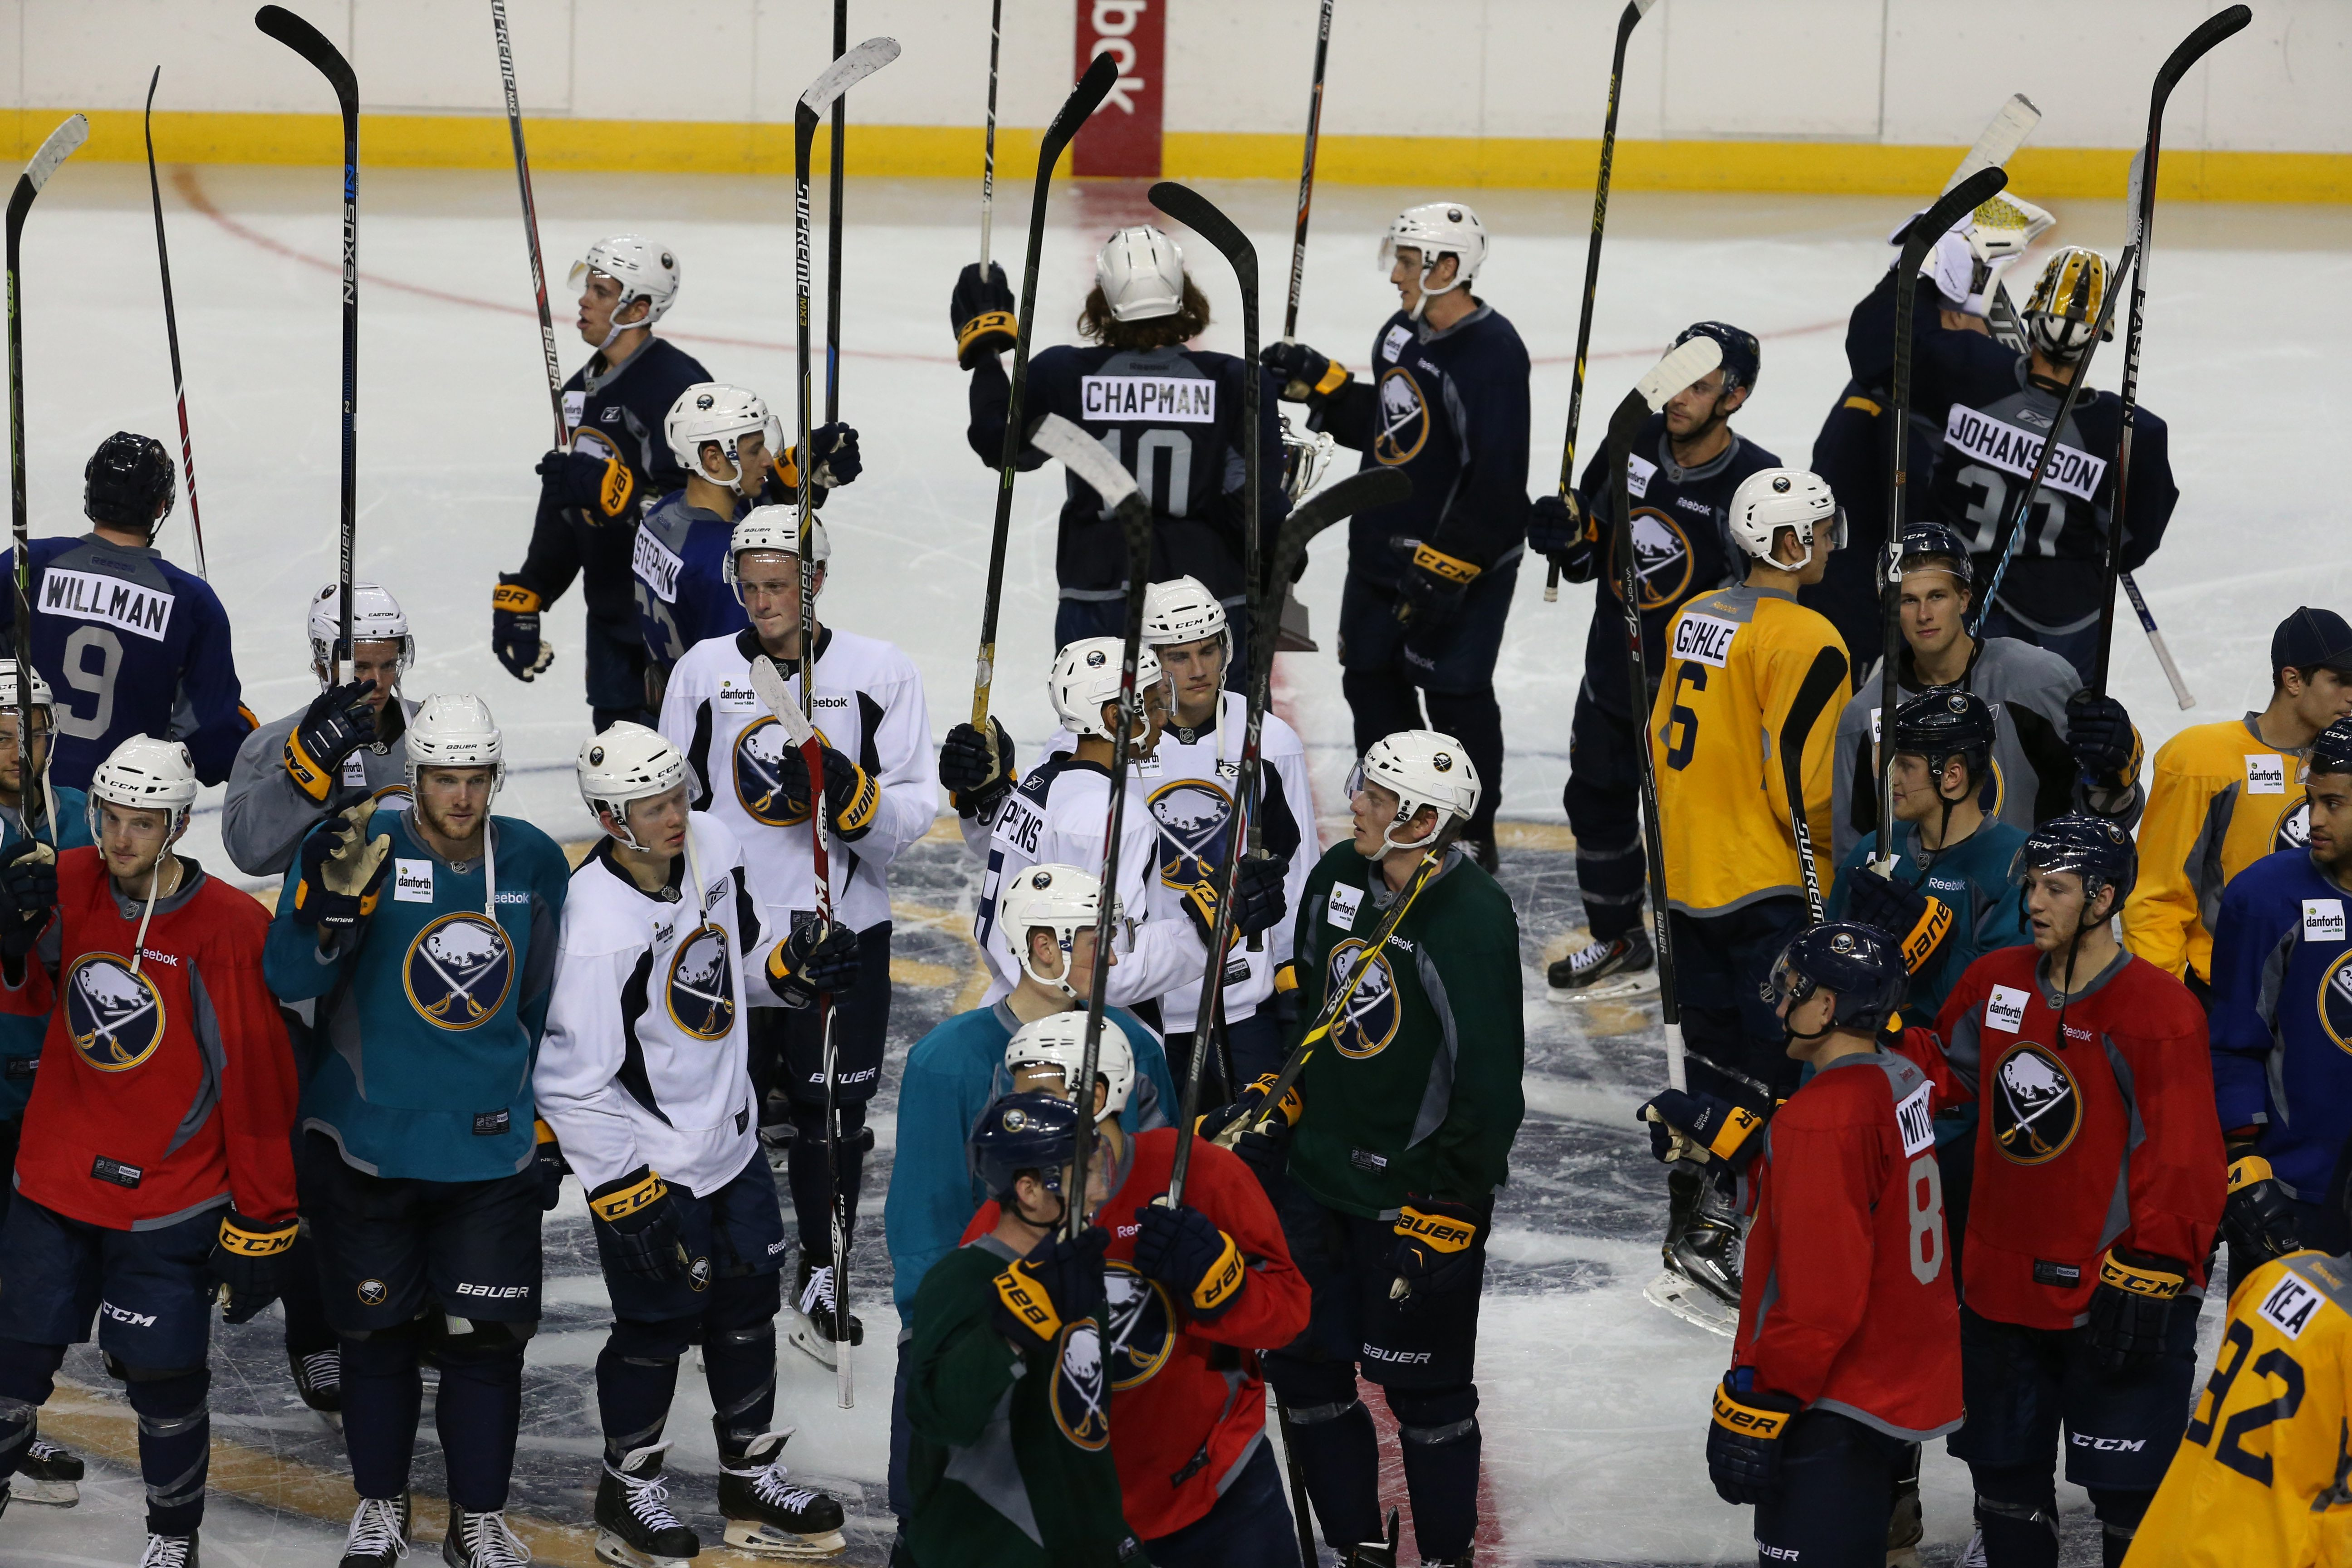 Sabres Development Camp players show their appreciation to the 1,500 fans at the end of Sunday's three-on-three tournament at First Niagara Center.